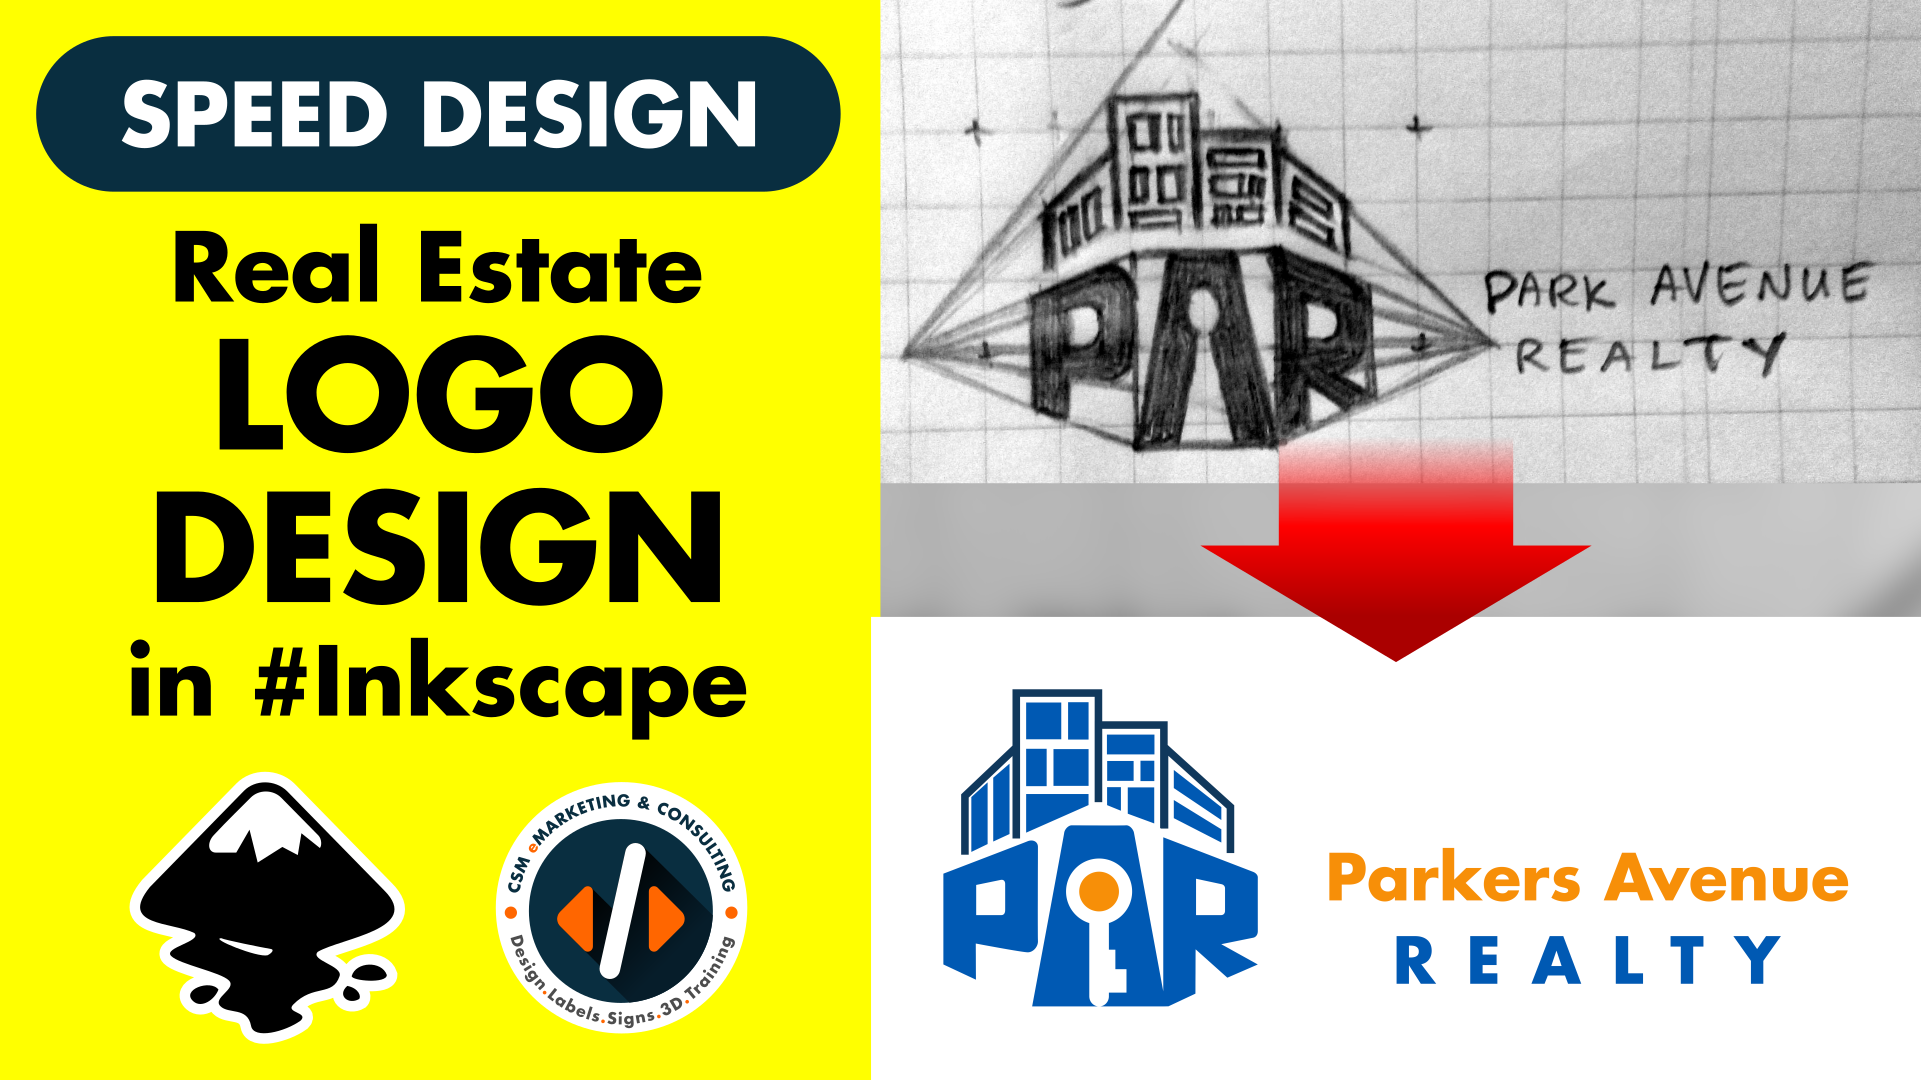 youtube-thumbnail-template-Inkscape-Logo-Design-Parkers-Ave-Realty.png